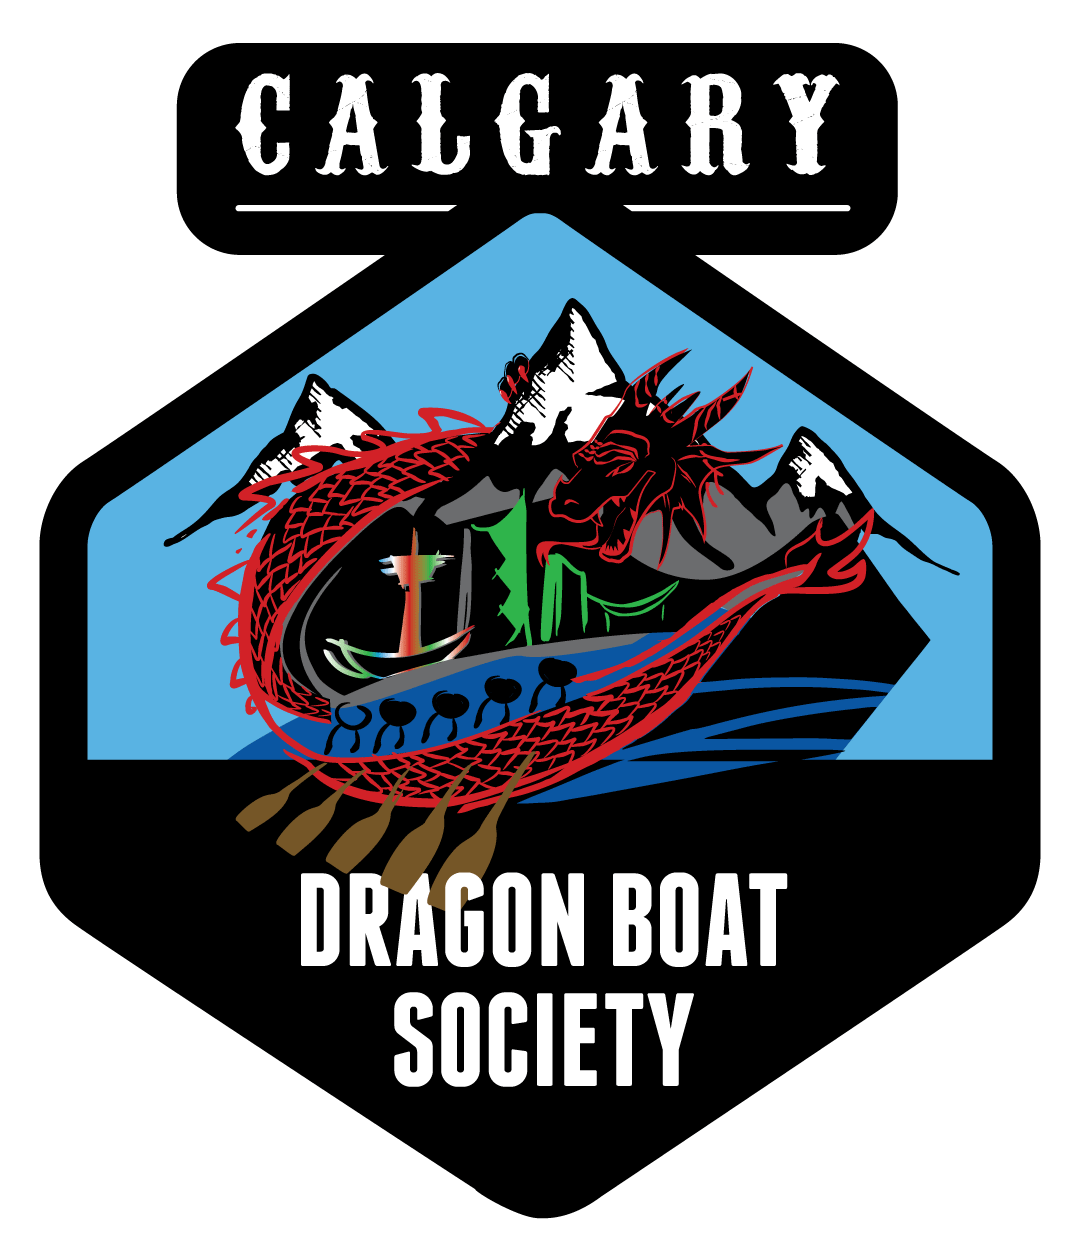 Calgary Dragon Boat Society